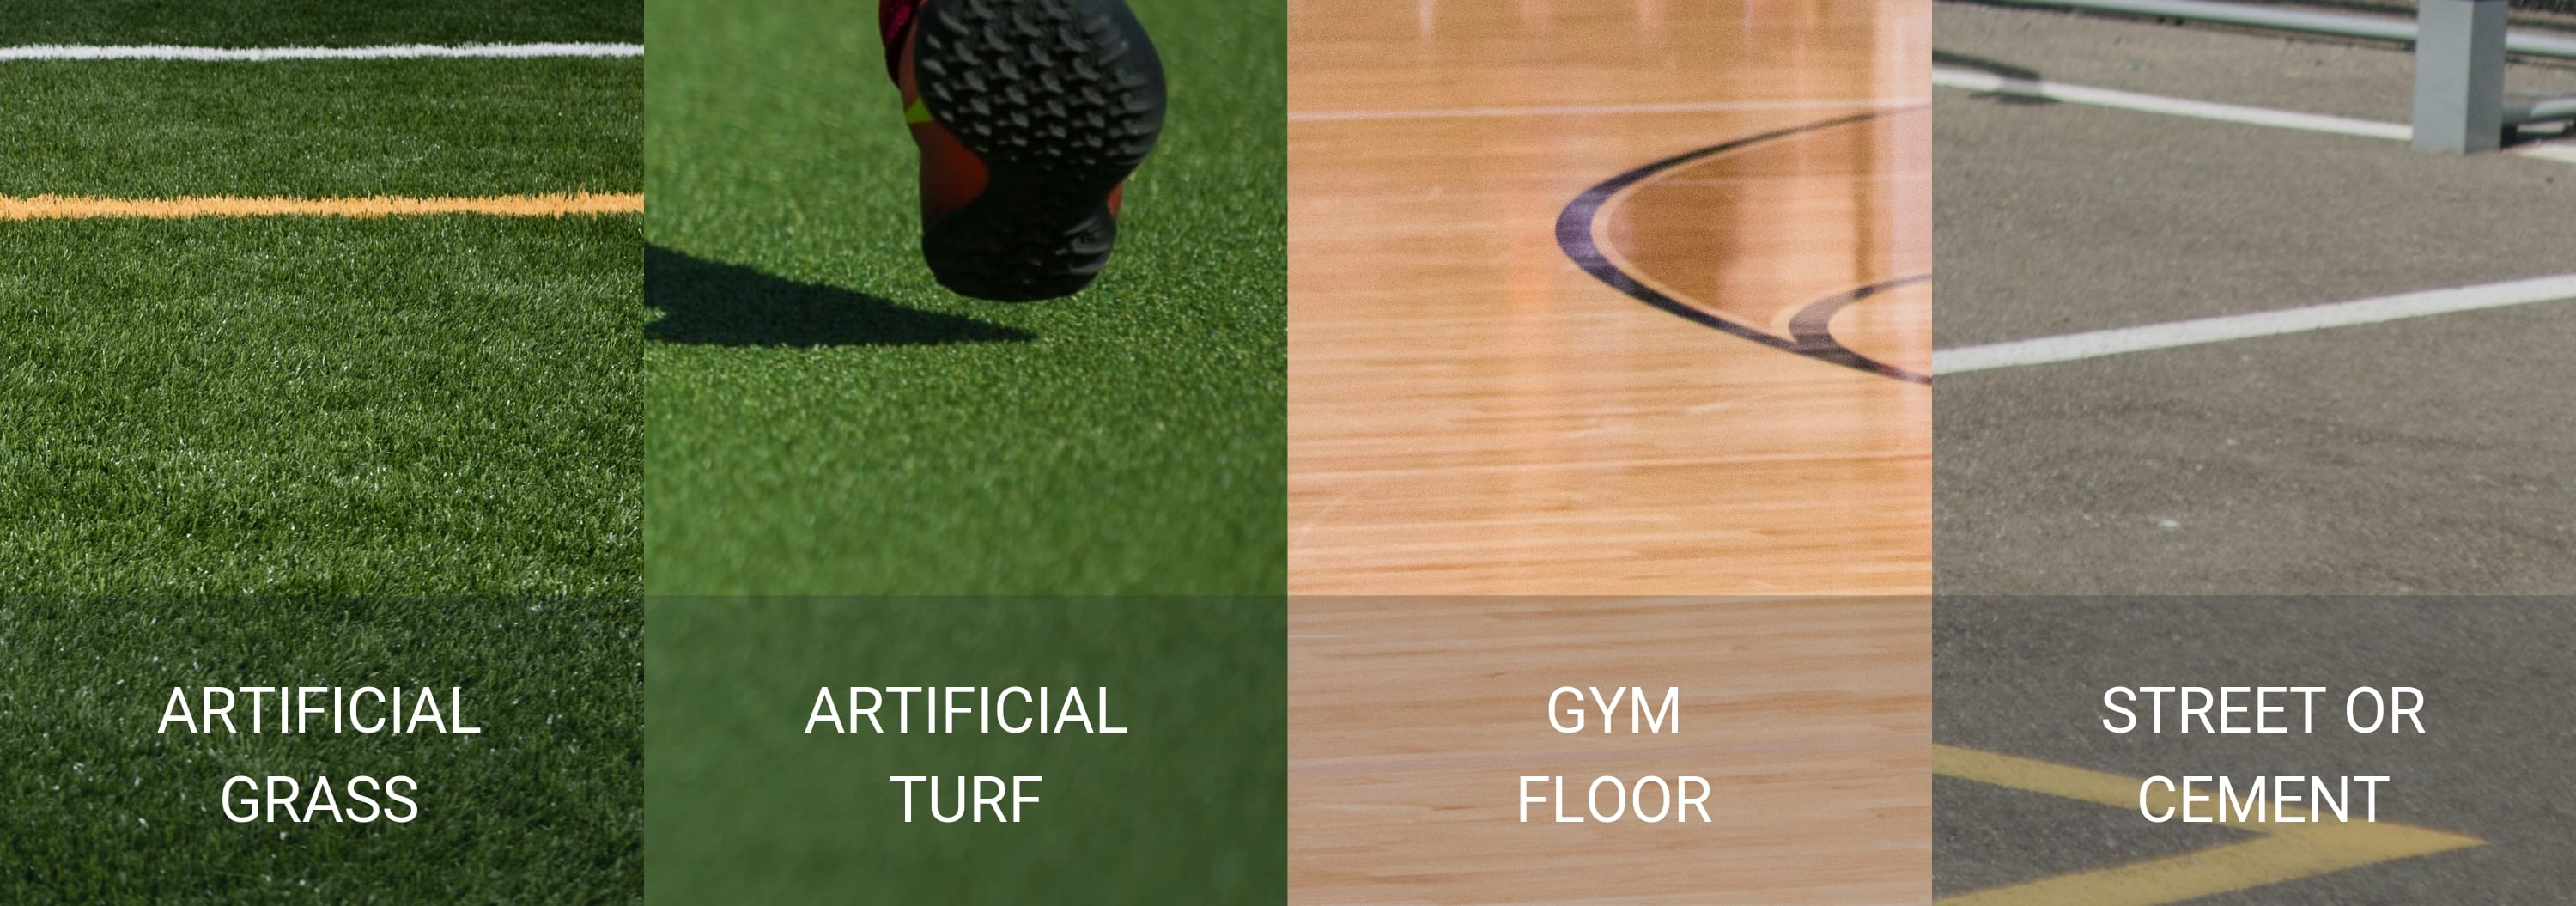 Artificial Playing Surface Types